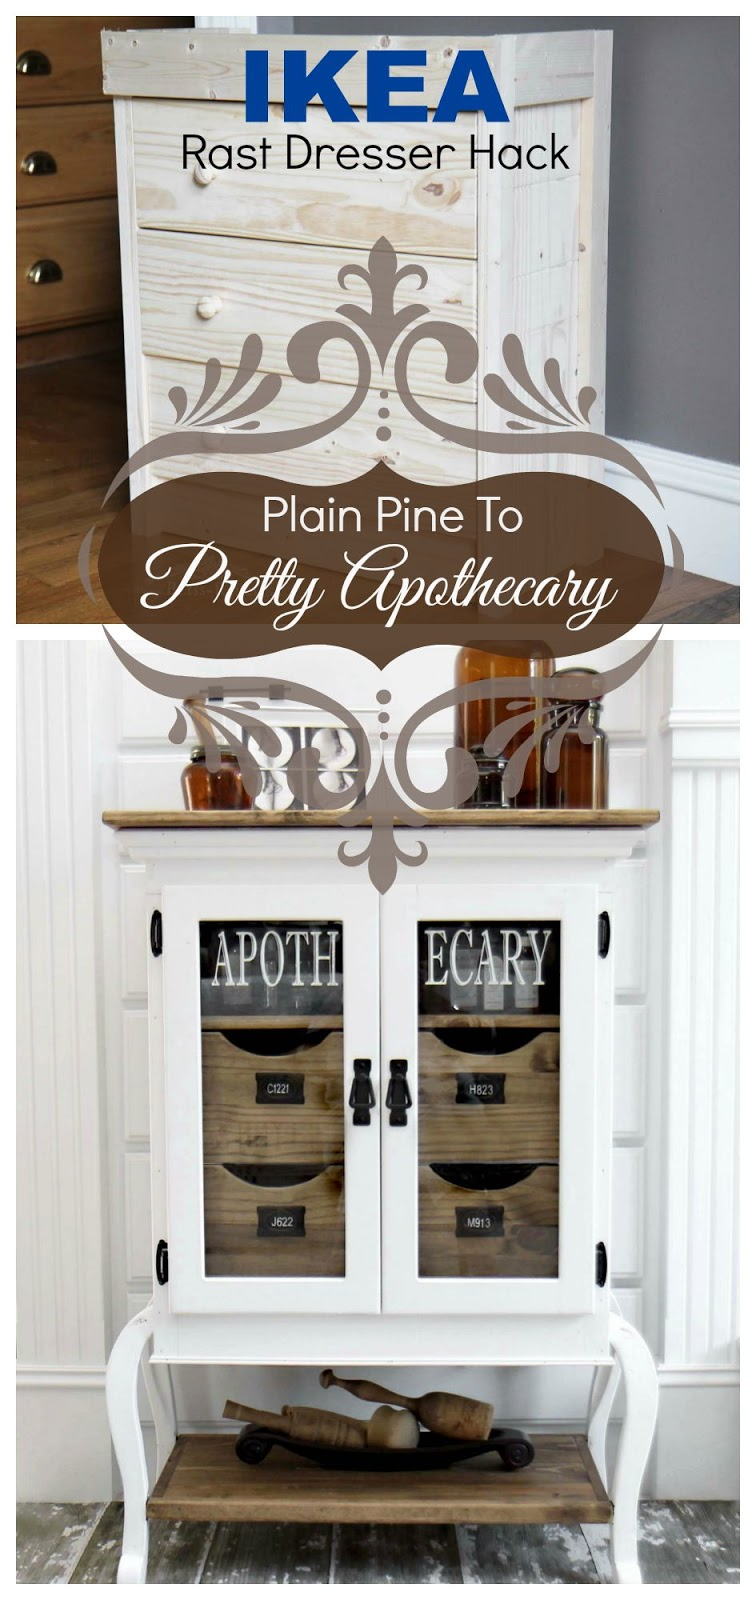 IKEA Hack, Apothecary Cabinet, Bliss Ranch.com